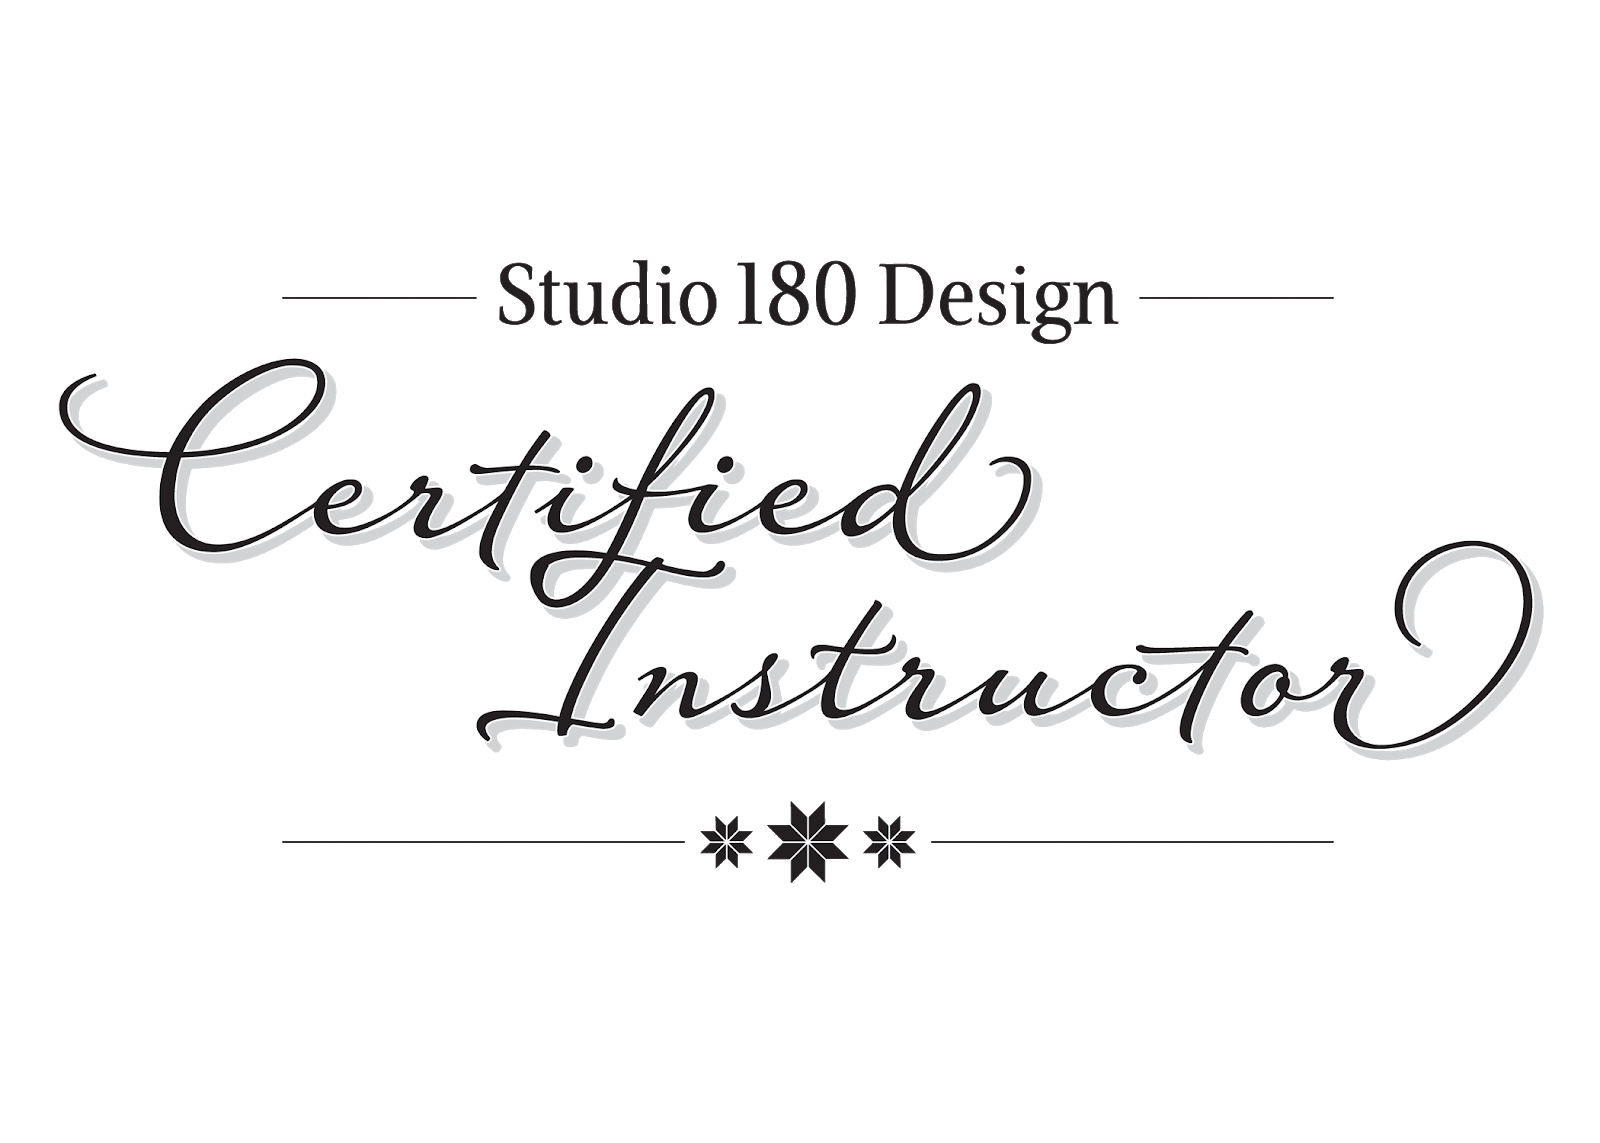 Studio 180 Certified Instructor